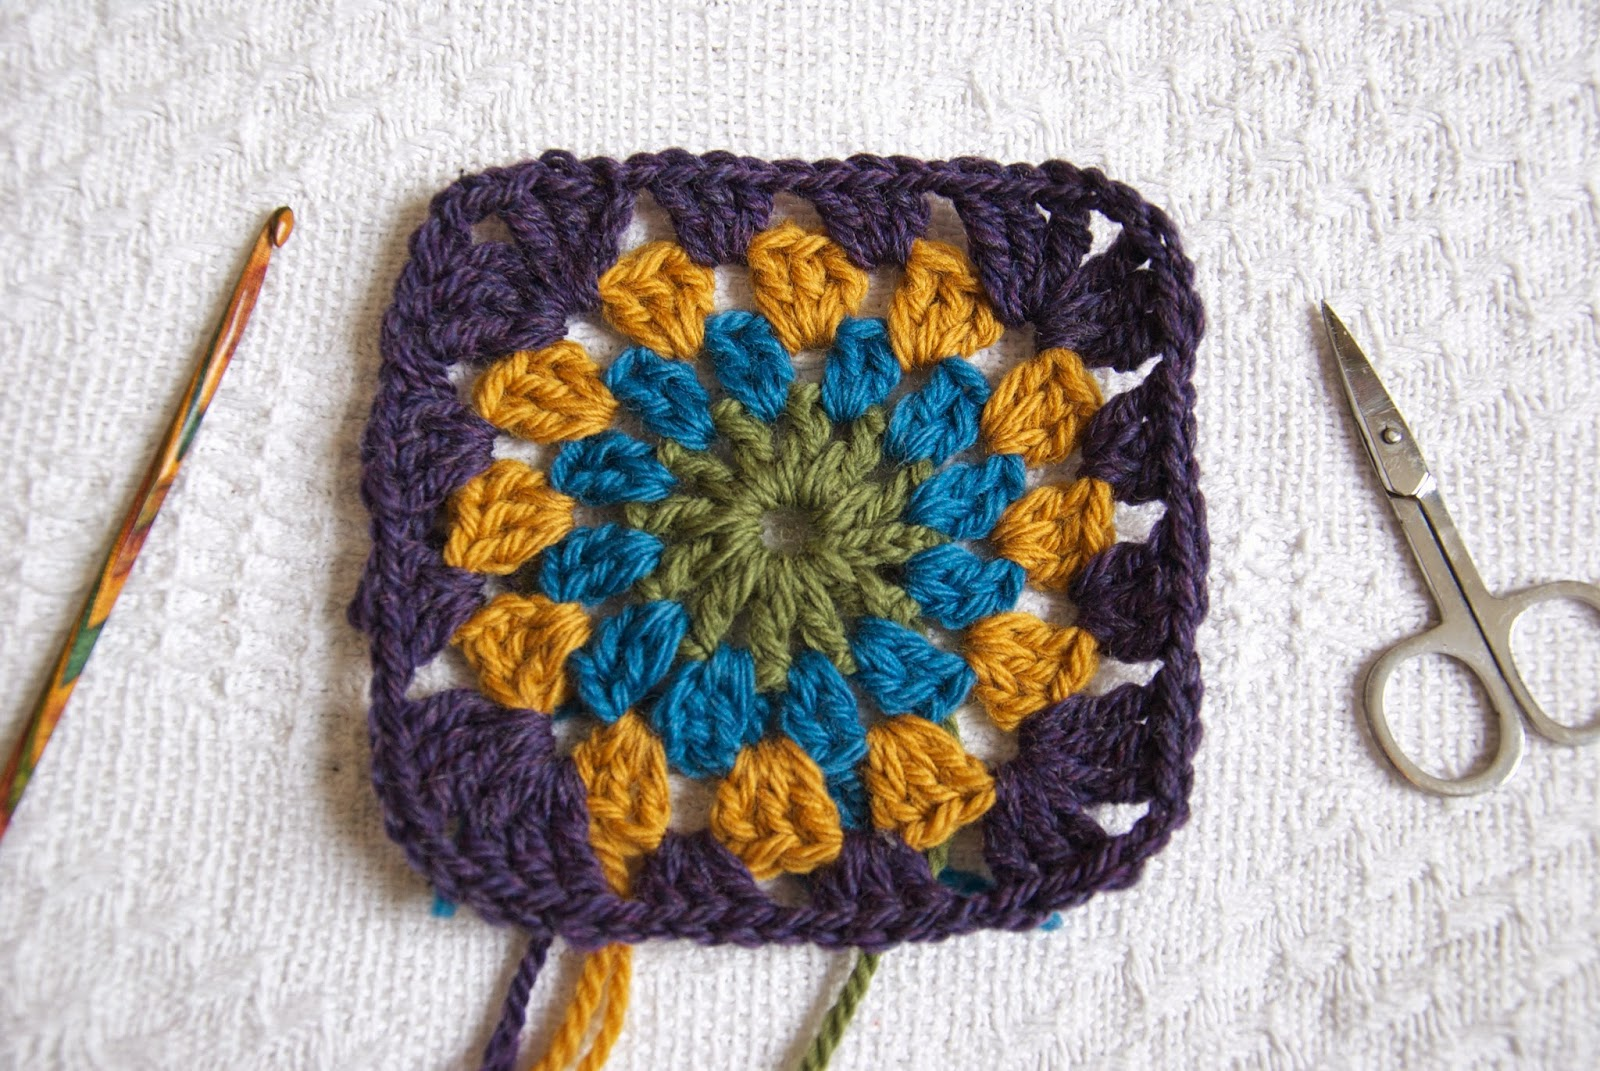 Crochet this classic granny square with a circle centre, using this free pattern.